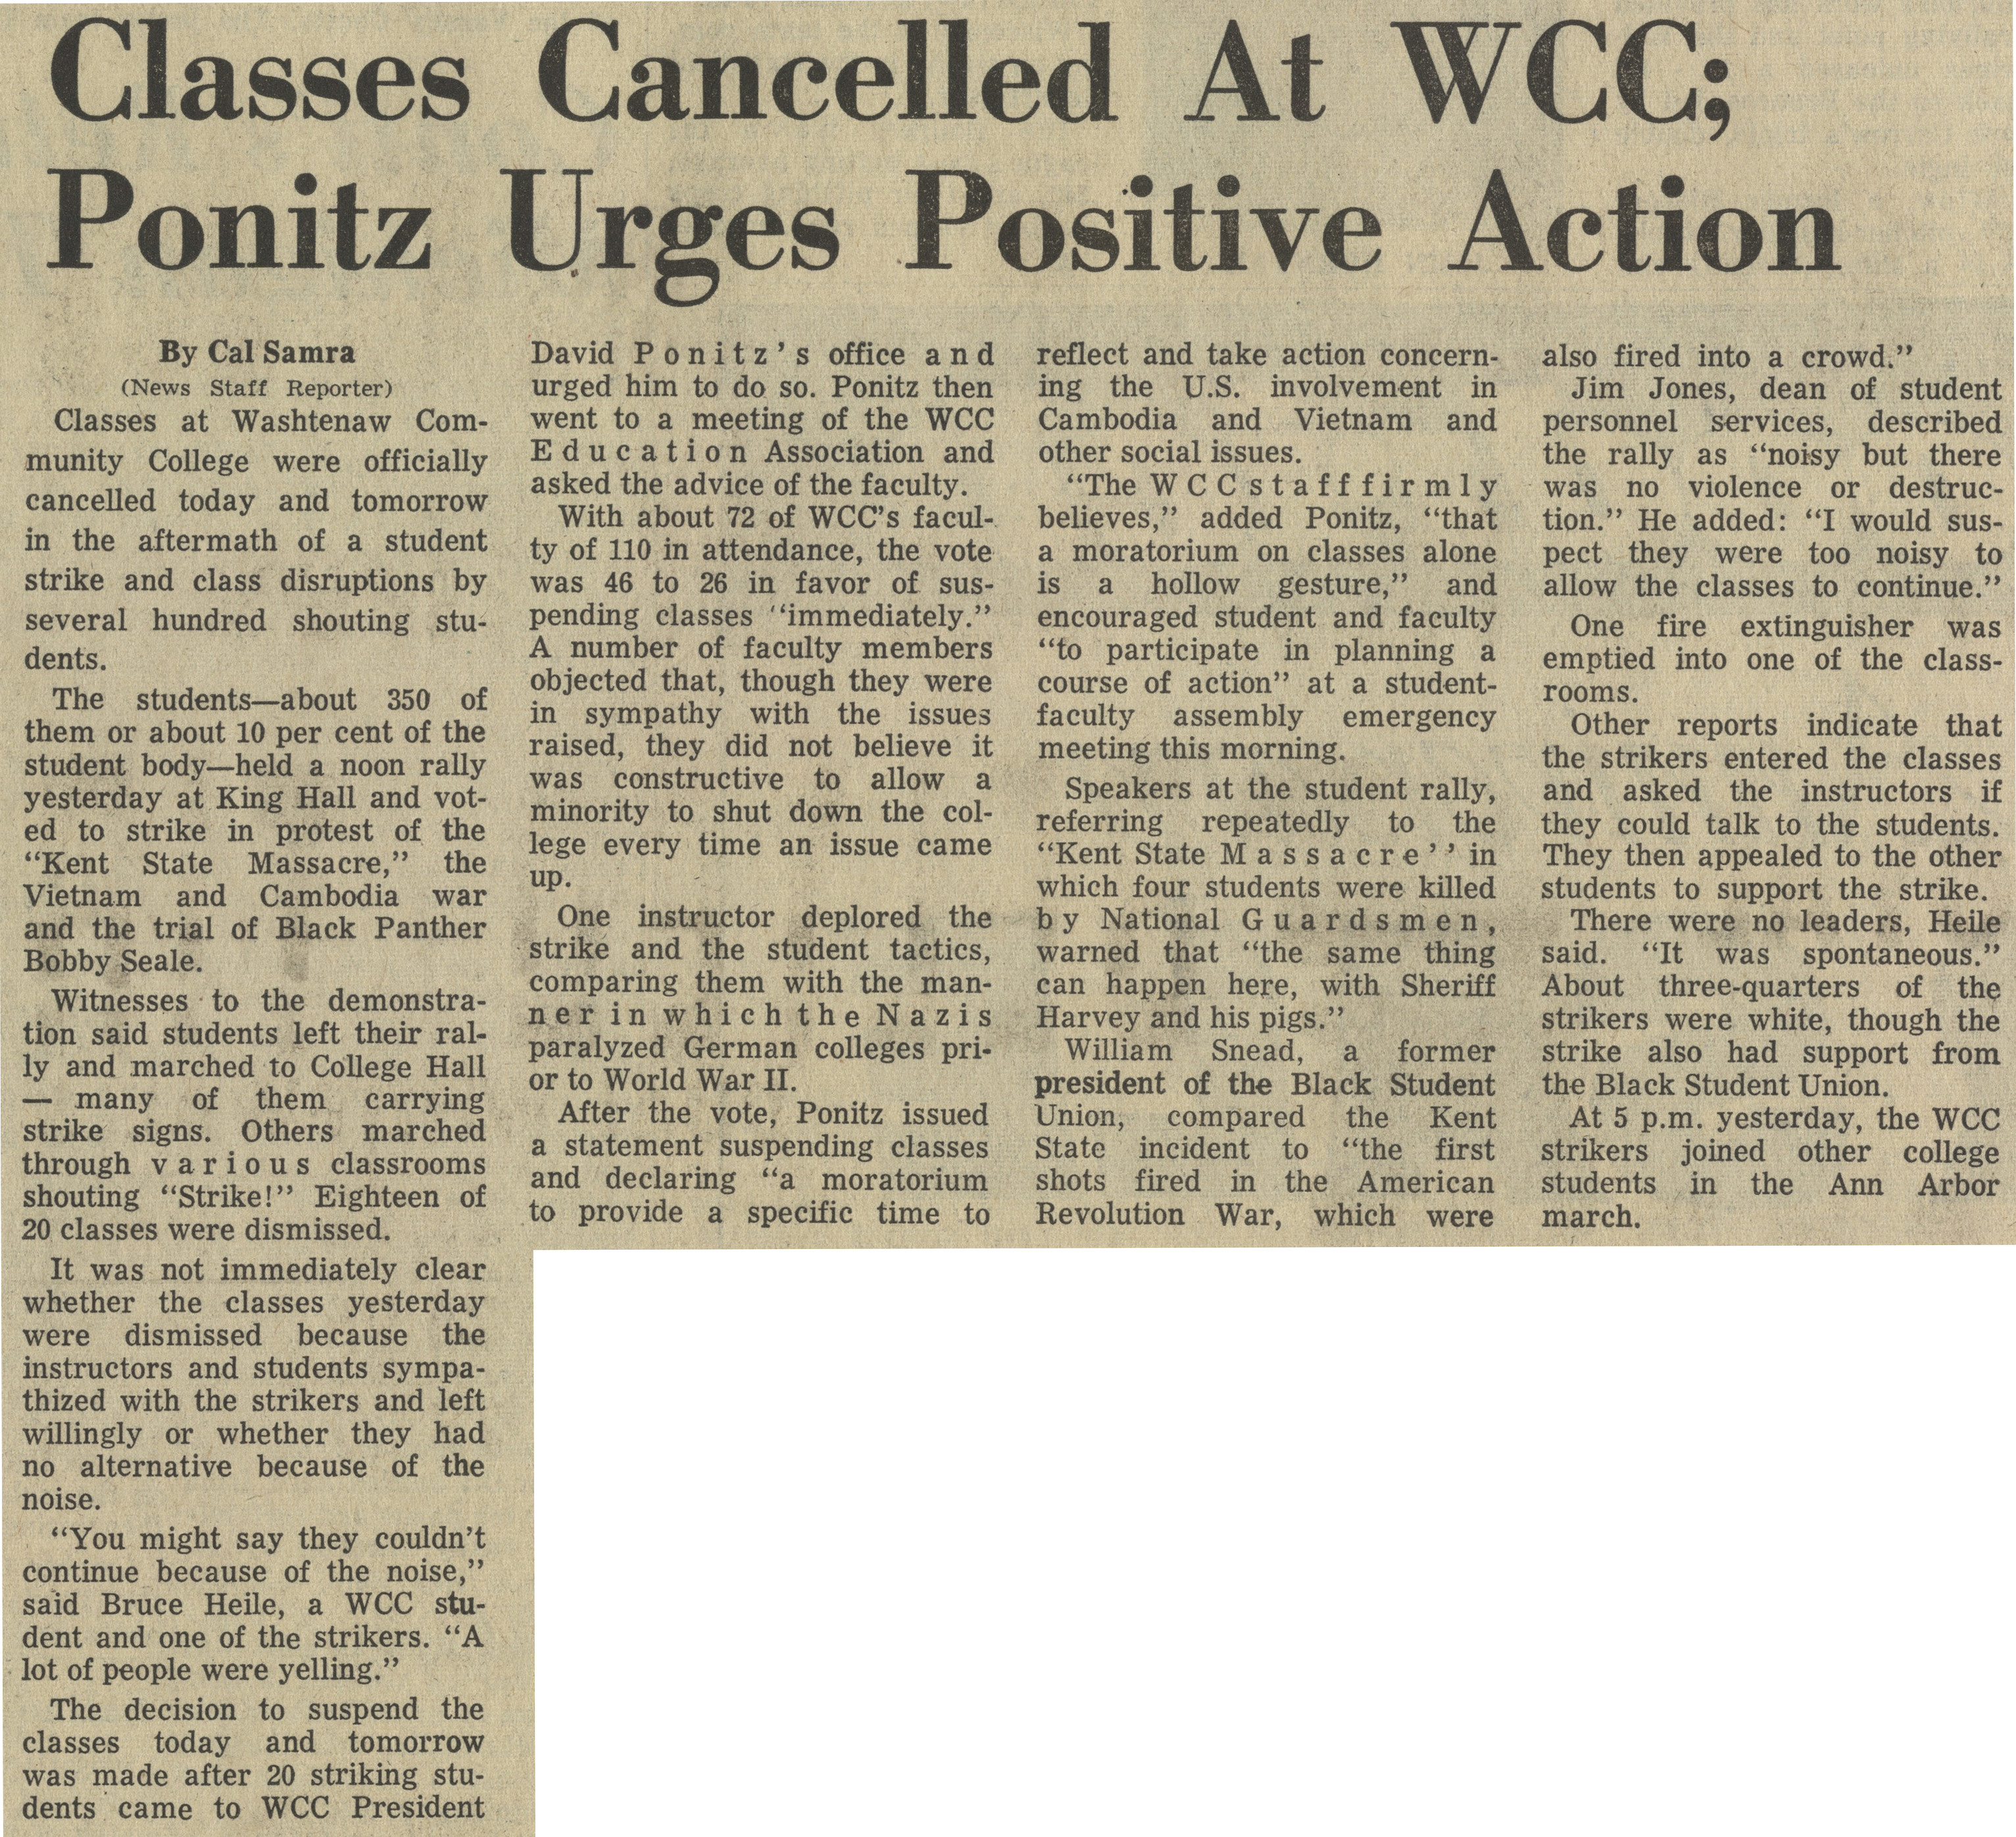 Classes Cancelled At WCC; Ponitz Urges Positive Action image